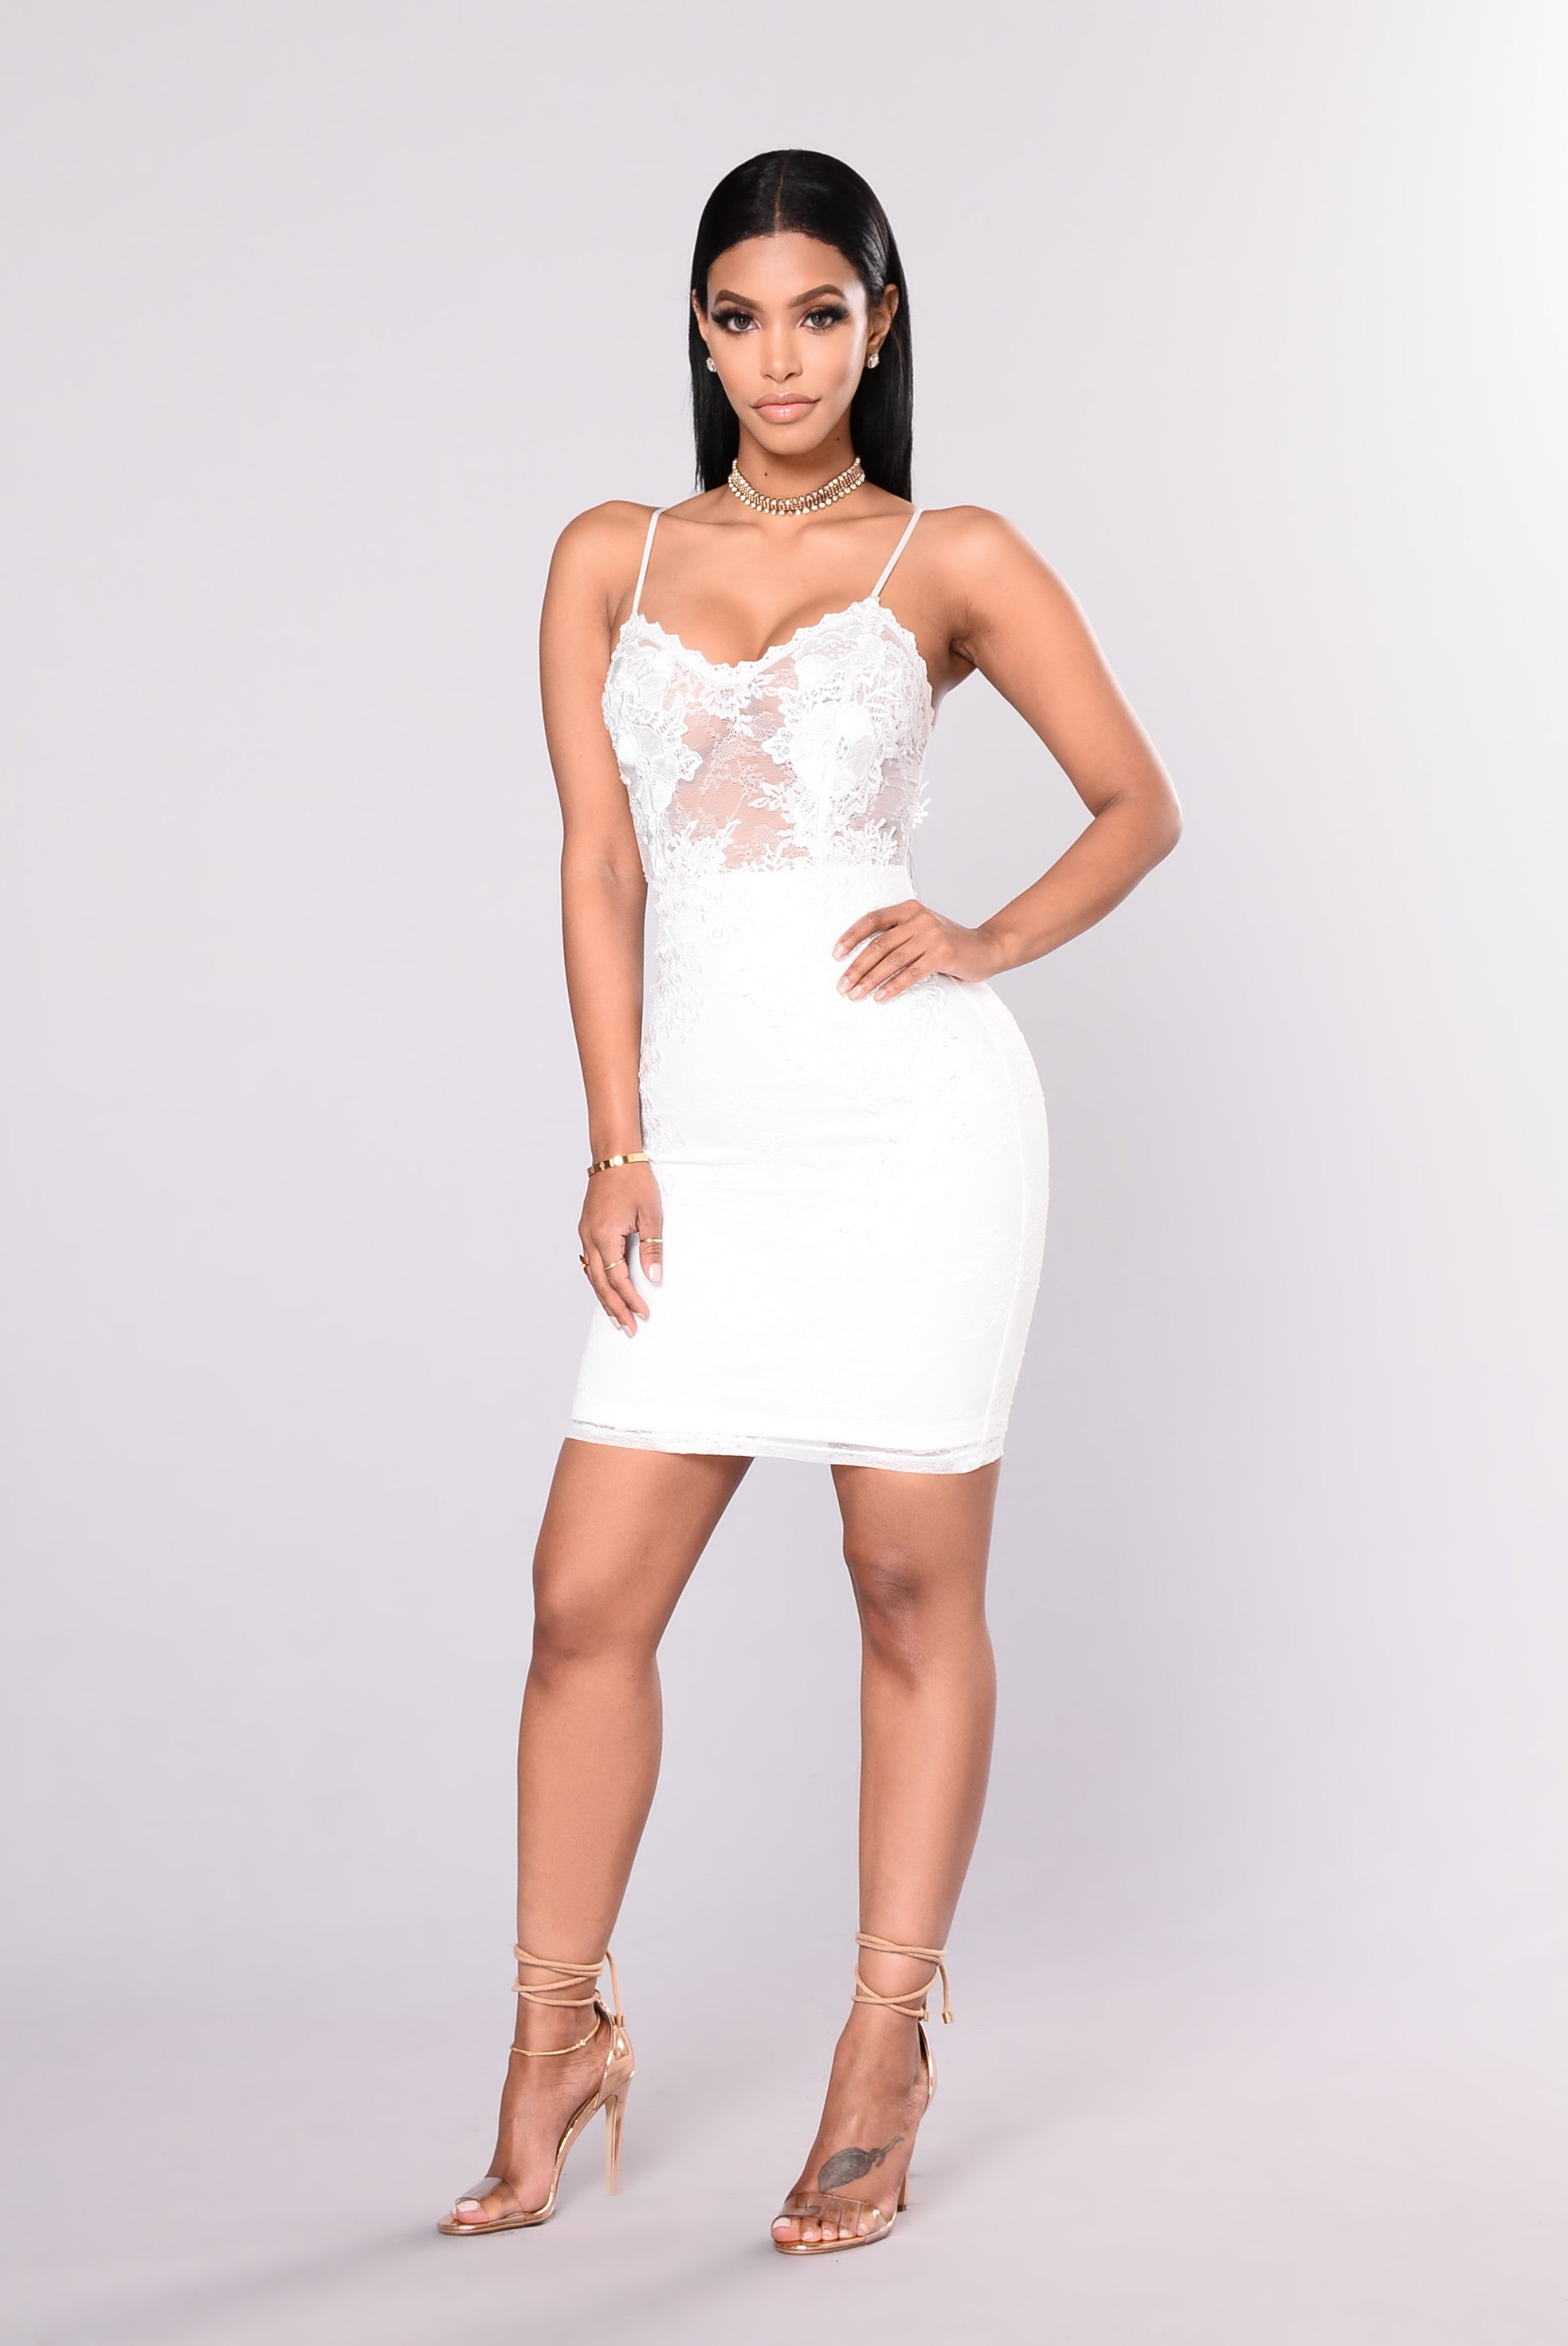 Honey Couture White AMREZY Mesh Bodycon Midi Dress, Bandage Dress Honey Couture, One Honey Boutique Australian Online Store - 1. Find this Pin and more on Things to Wear by Zae Lee. Oh to have the courage to wear some of these outfits. a photo gallery that presents 33 all white .